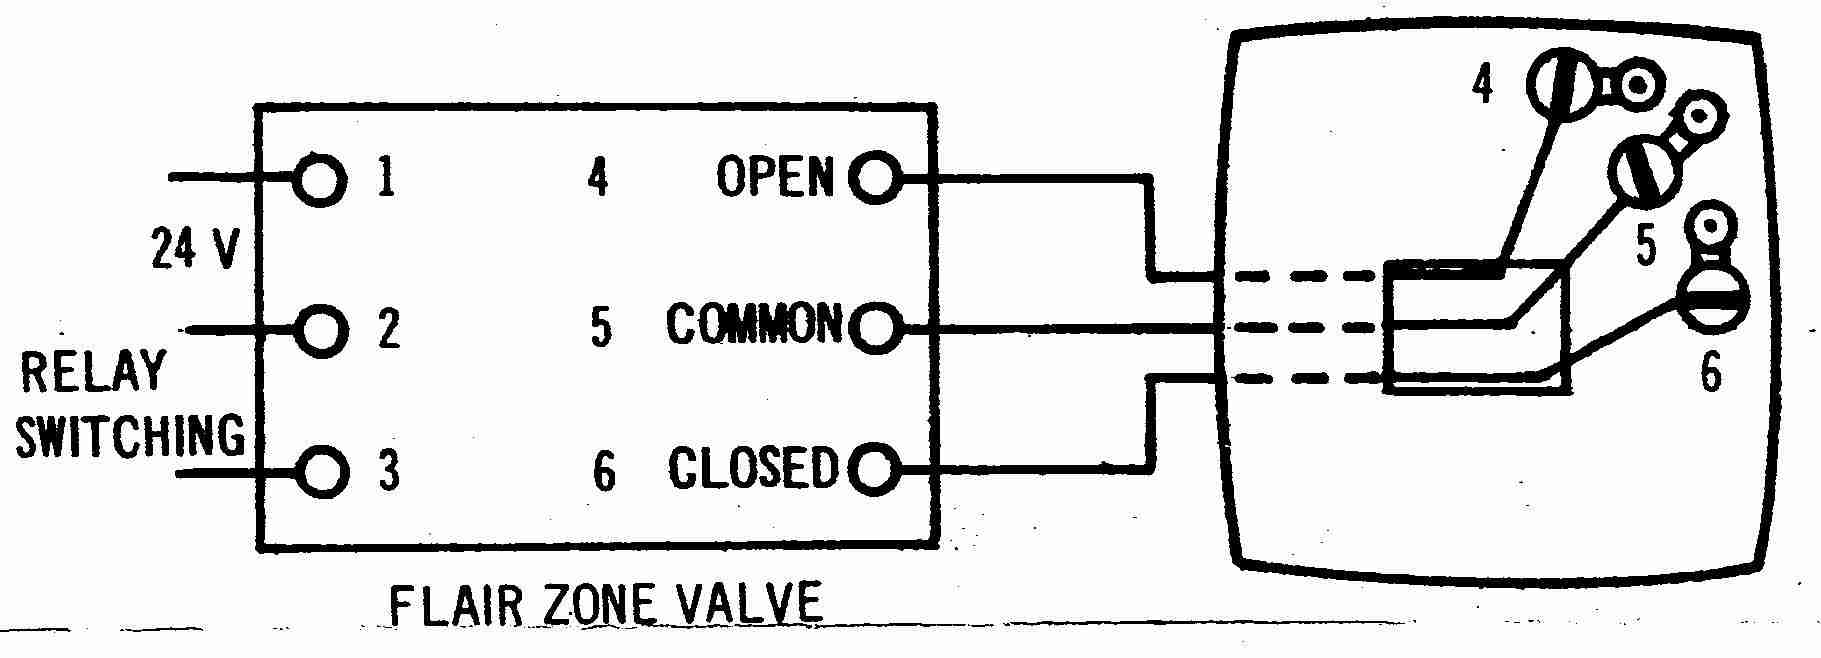 zone valve wiring installation instructions guide to heating rh inspectapedia com suction control valve wiring diagram sprinkler control valve wiring diagram